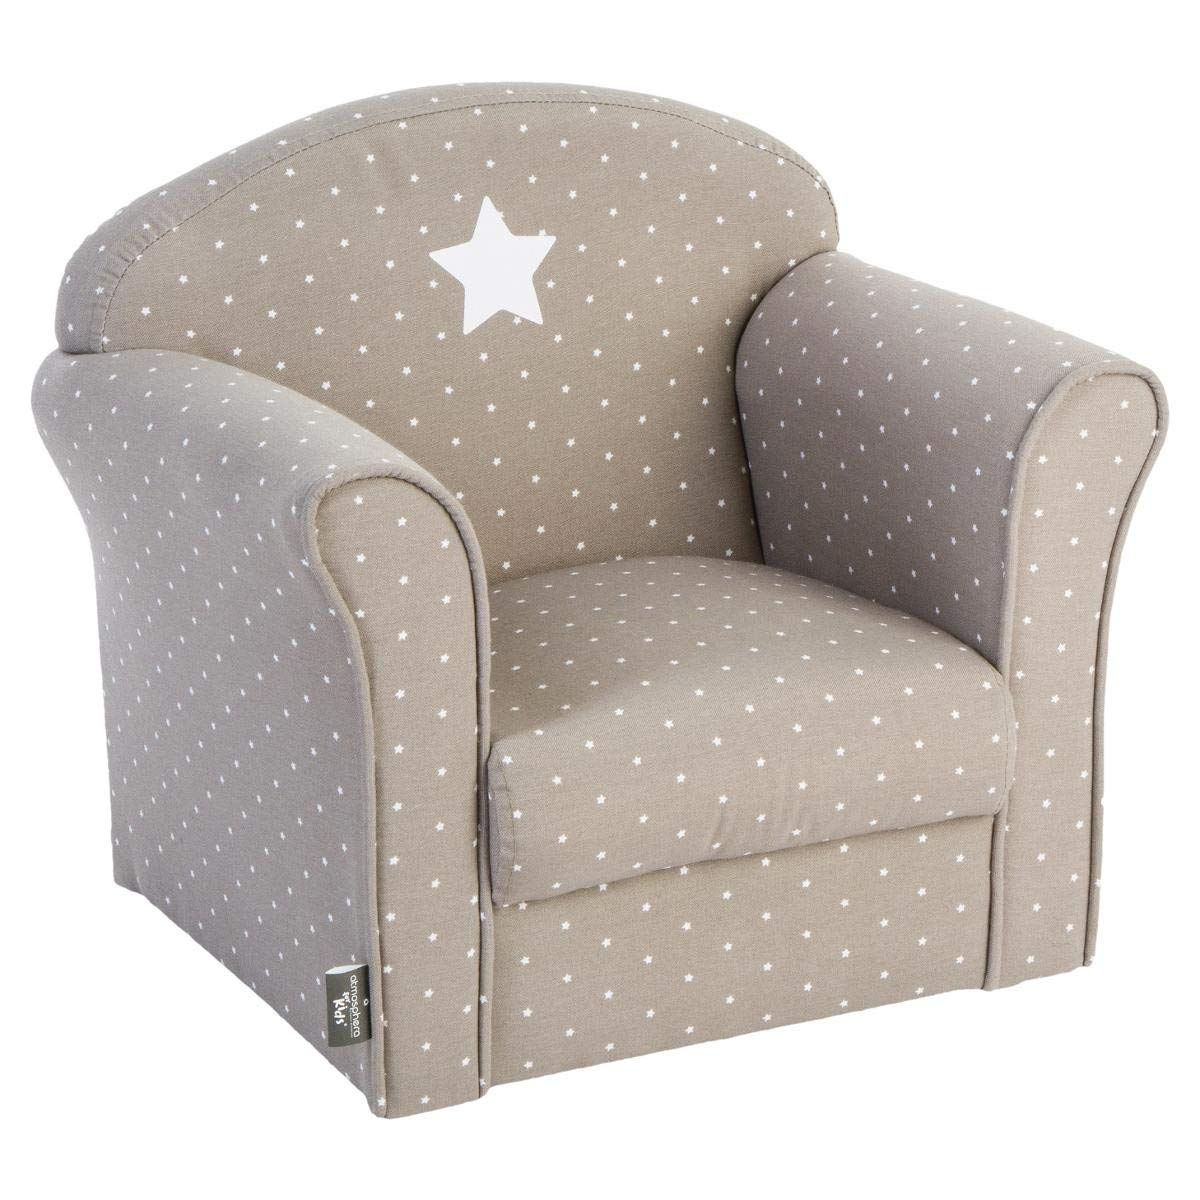 Atmosphera Sillón Infantil Taupe product image